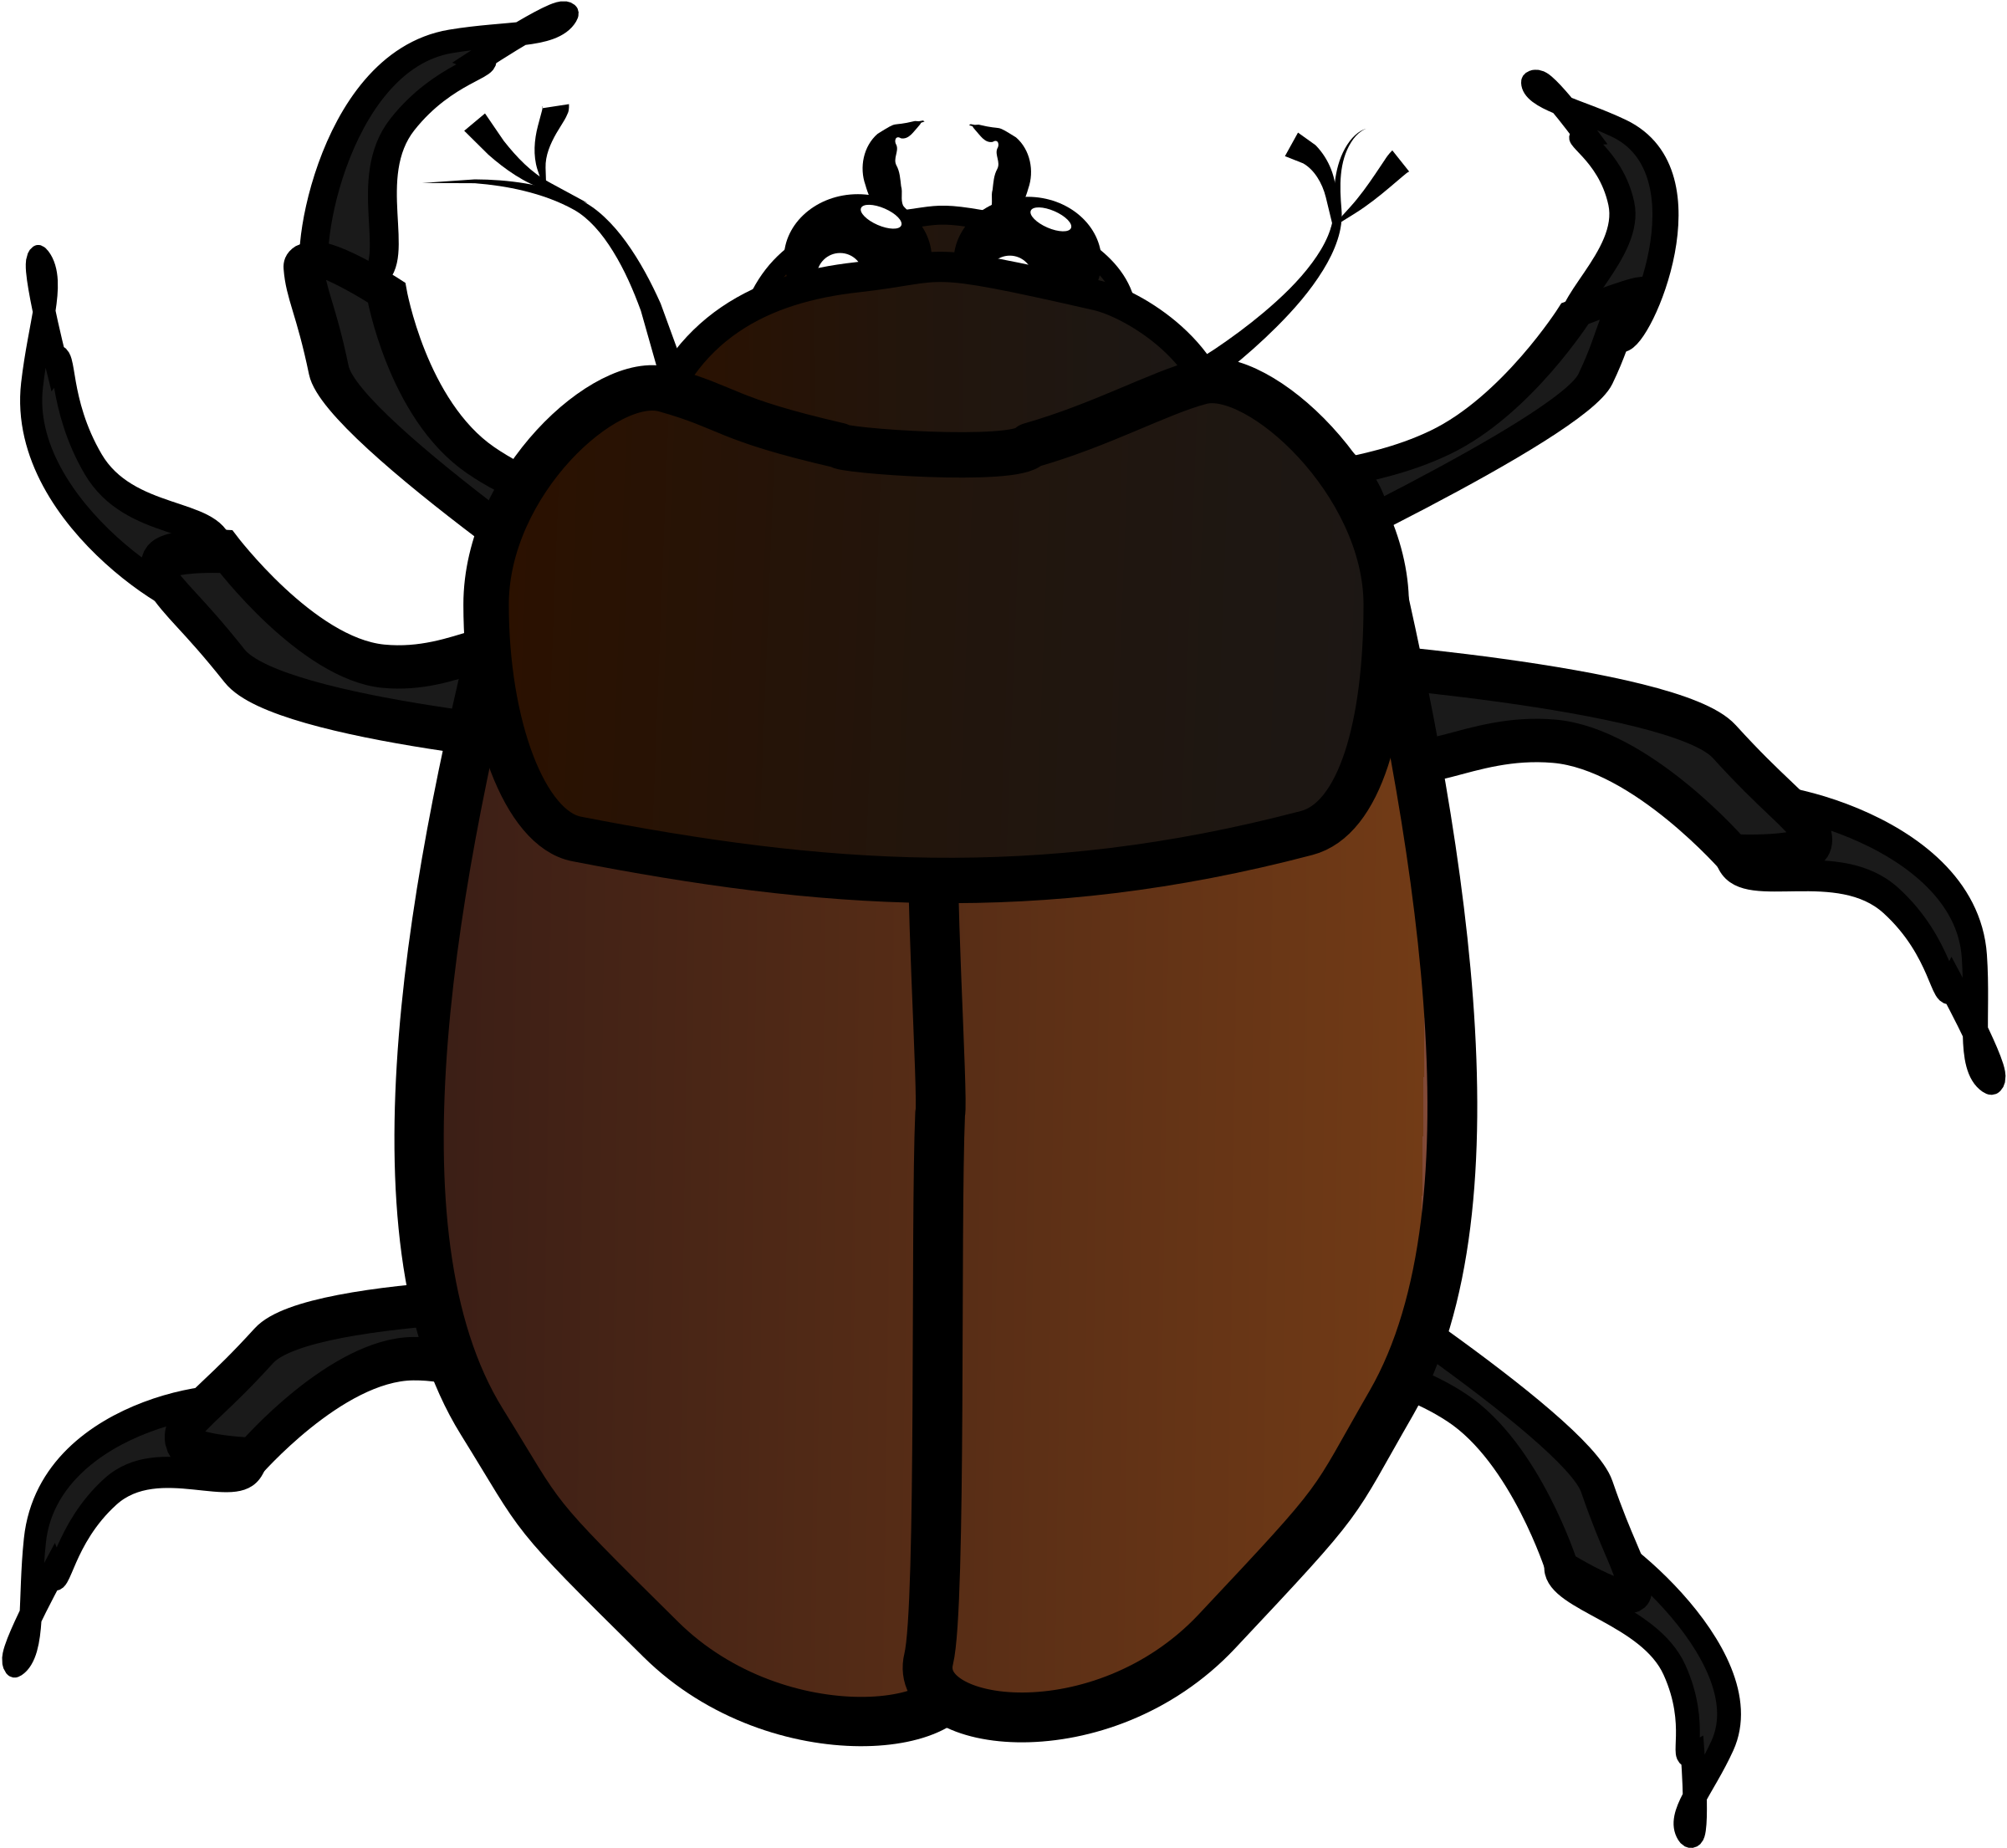 Bug clipart #3, Download drawings